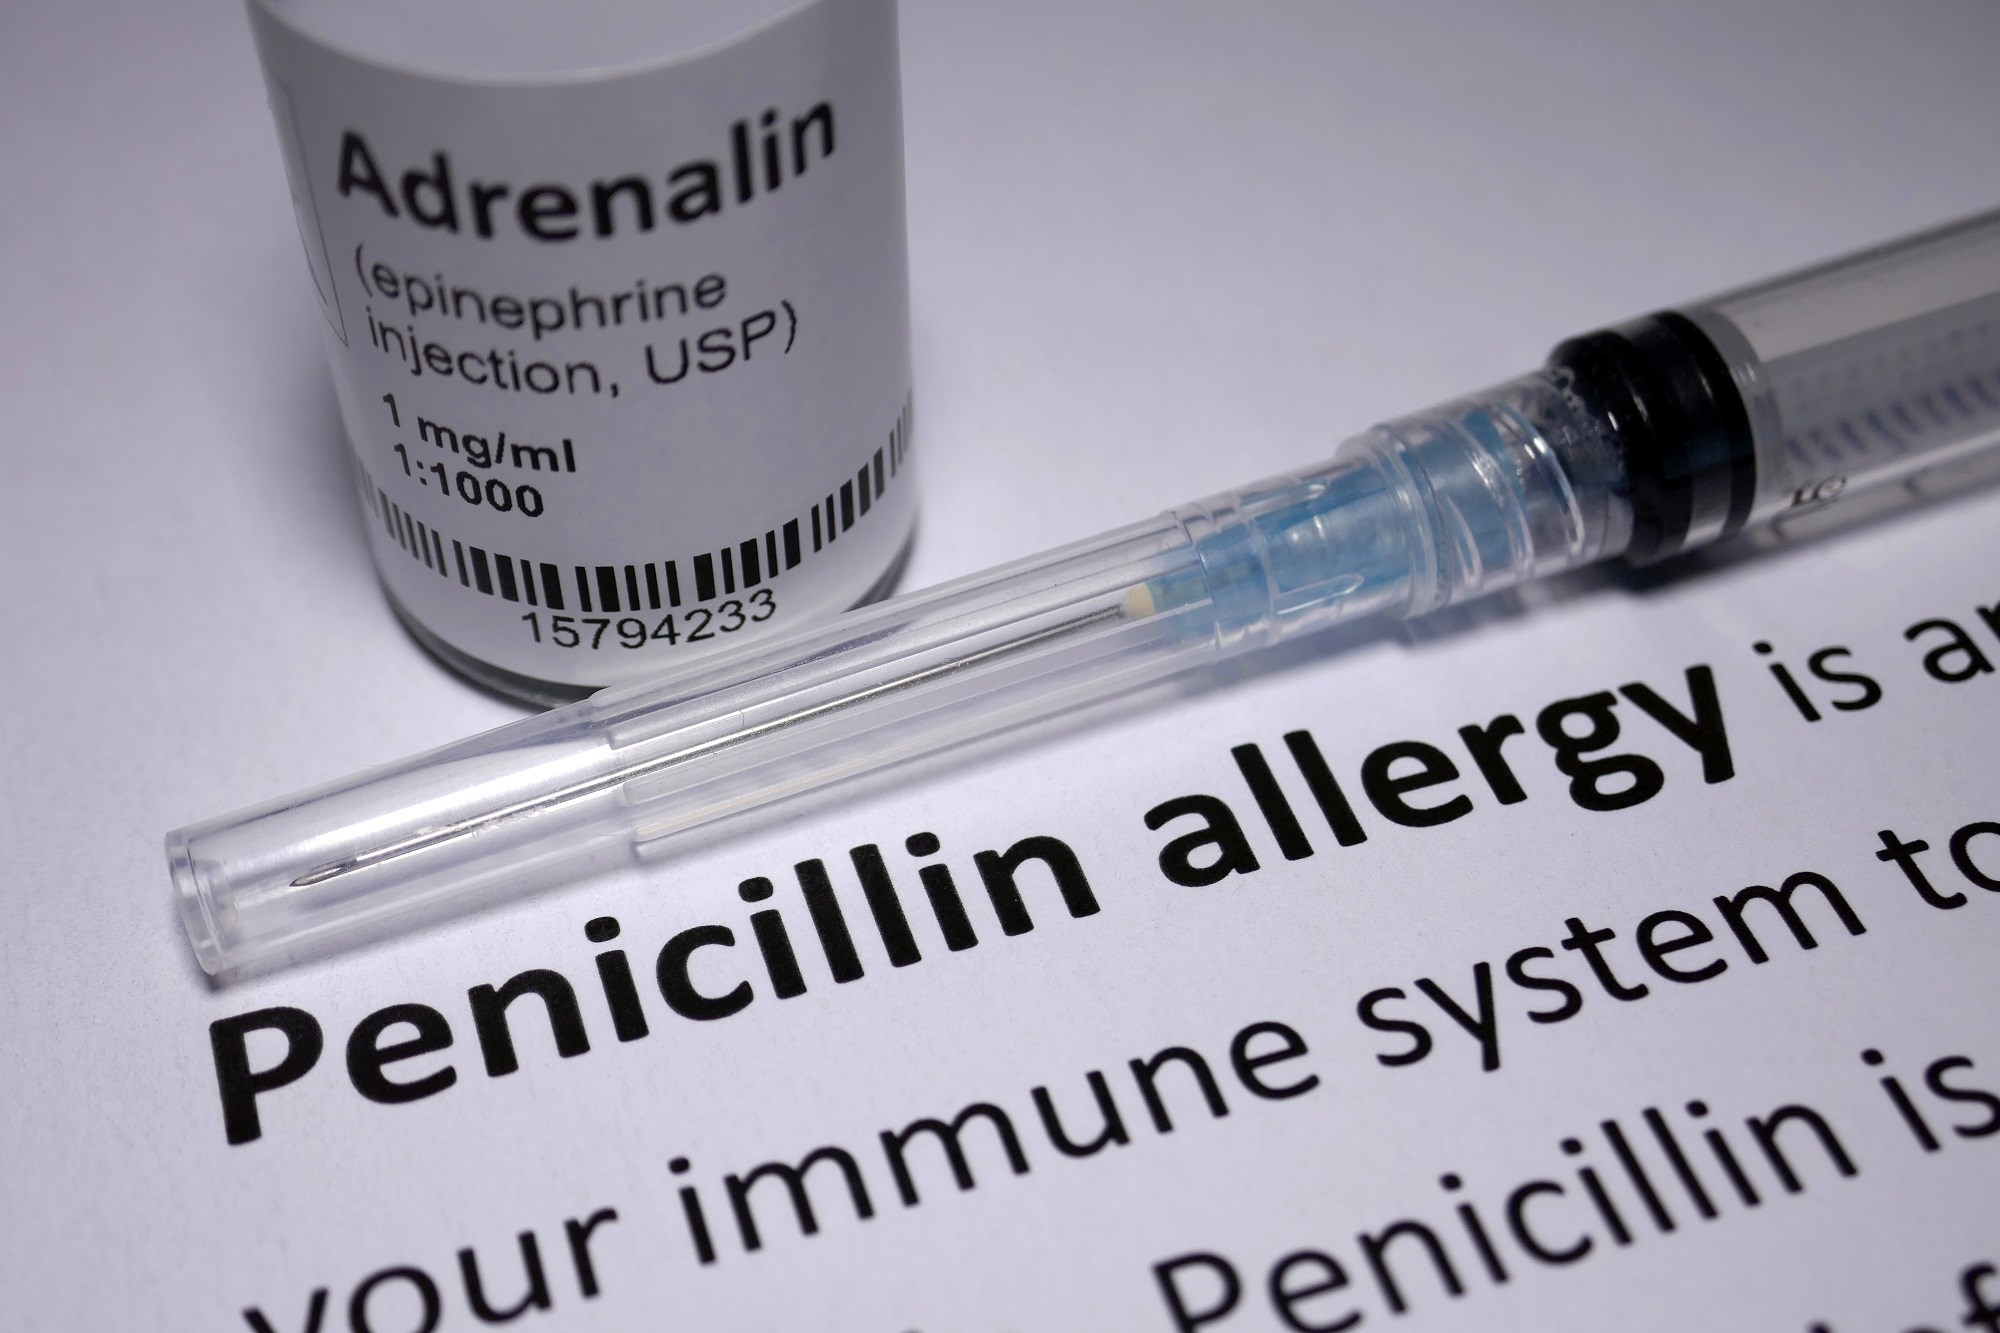 Penicillin Allergies: Commonly Reported but Rarely Accurate